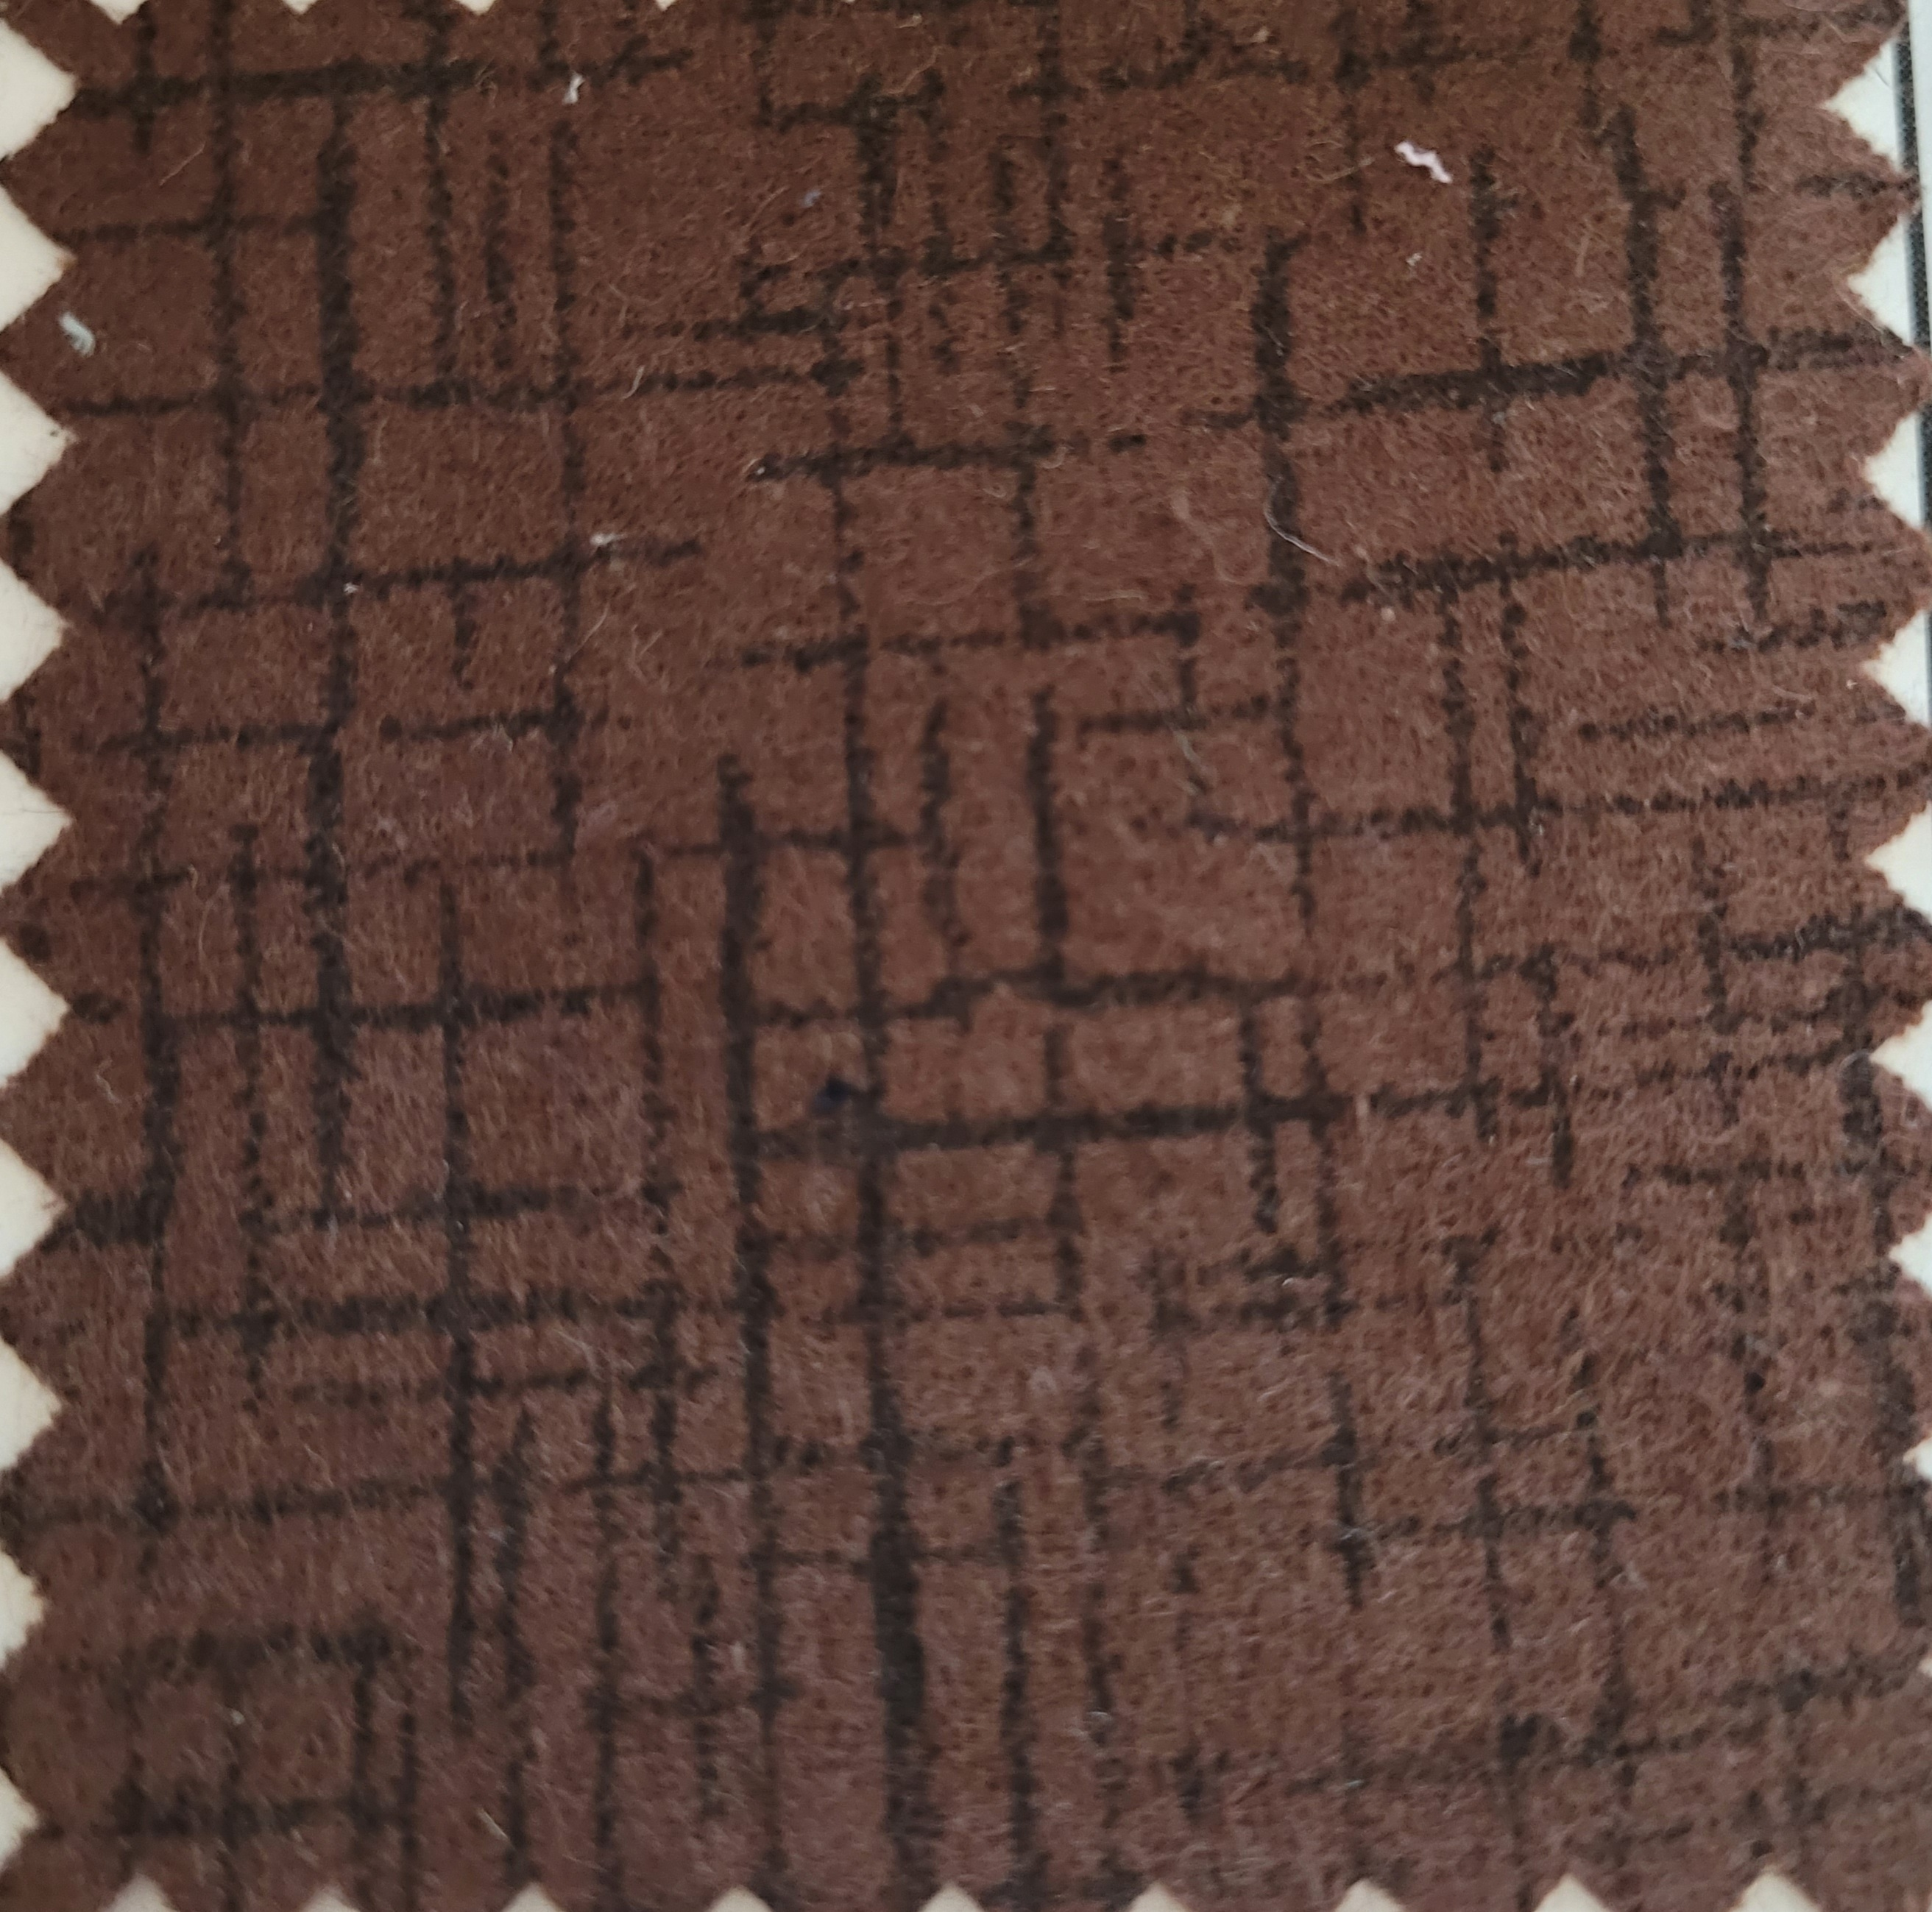 Betula Cotton flannel 109x98 - brown